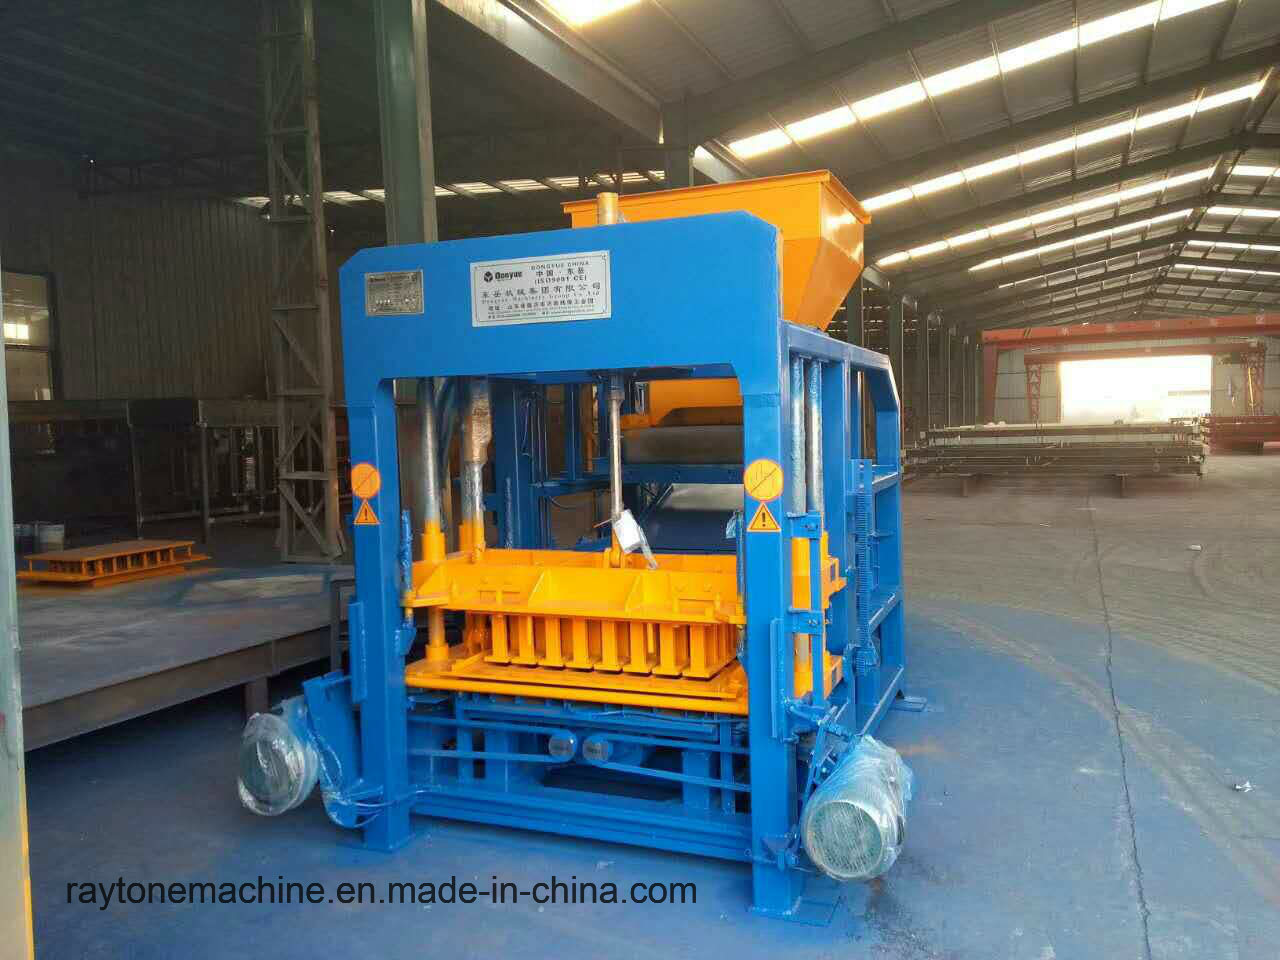 Qt4-18 Hydraulic Automatic Concrete Paving Paver Brick Block Making Machine